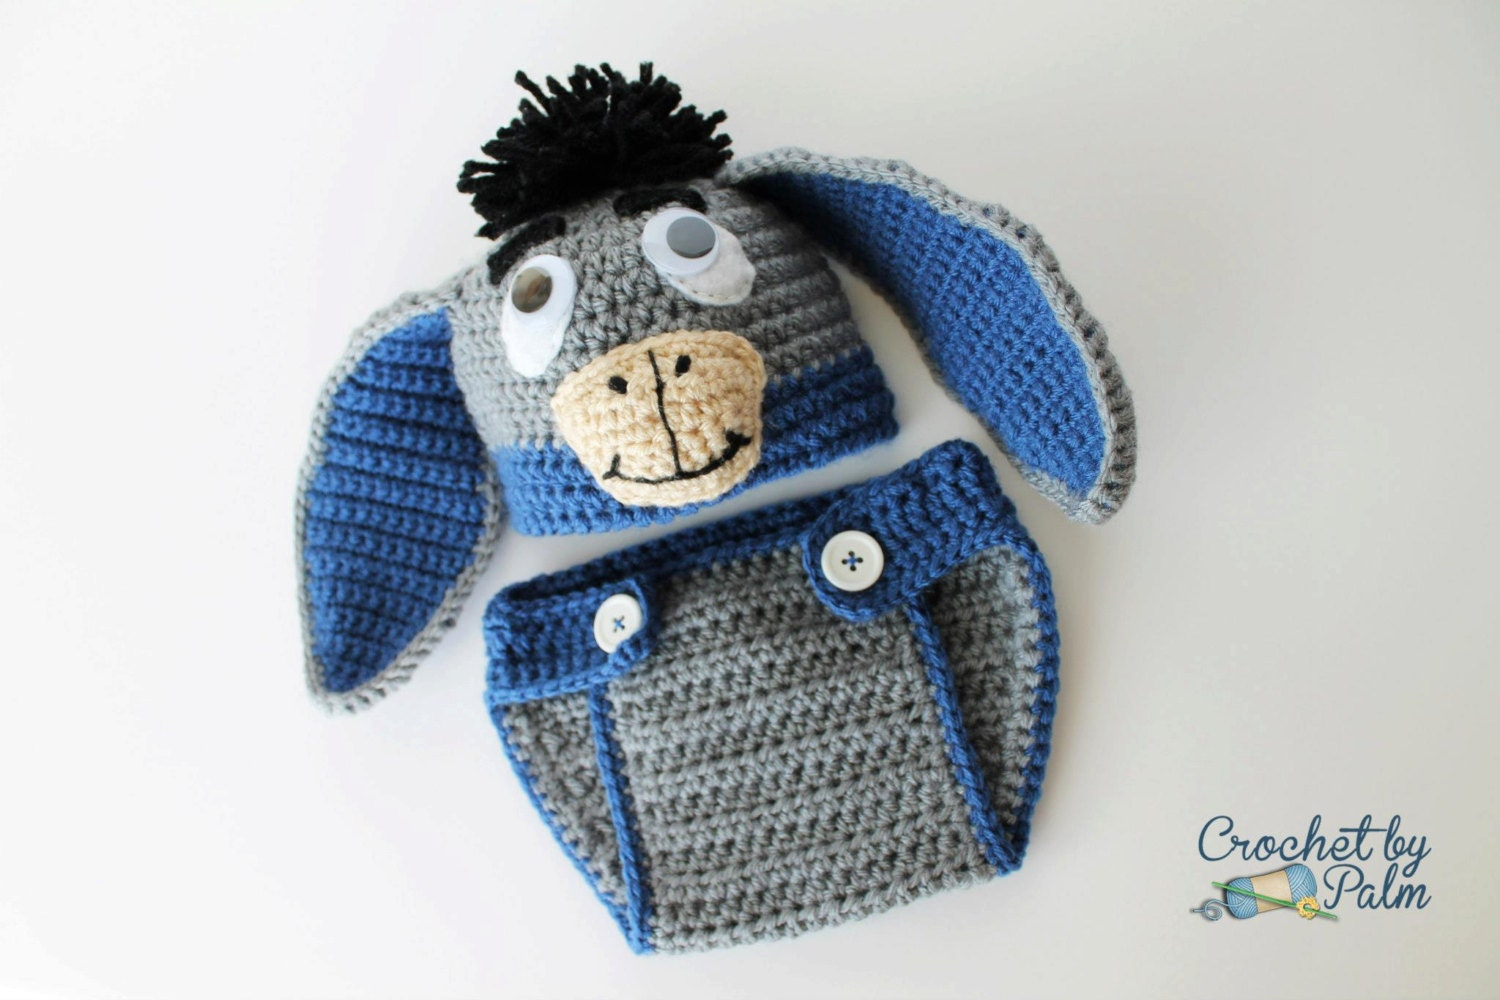 Free Crochet Pattern Donkey Hat : Crochet Baby Donkey Hat and Diaper Cover Set by ...